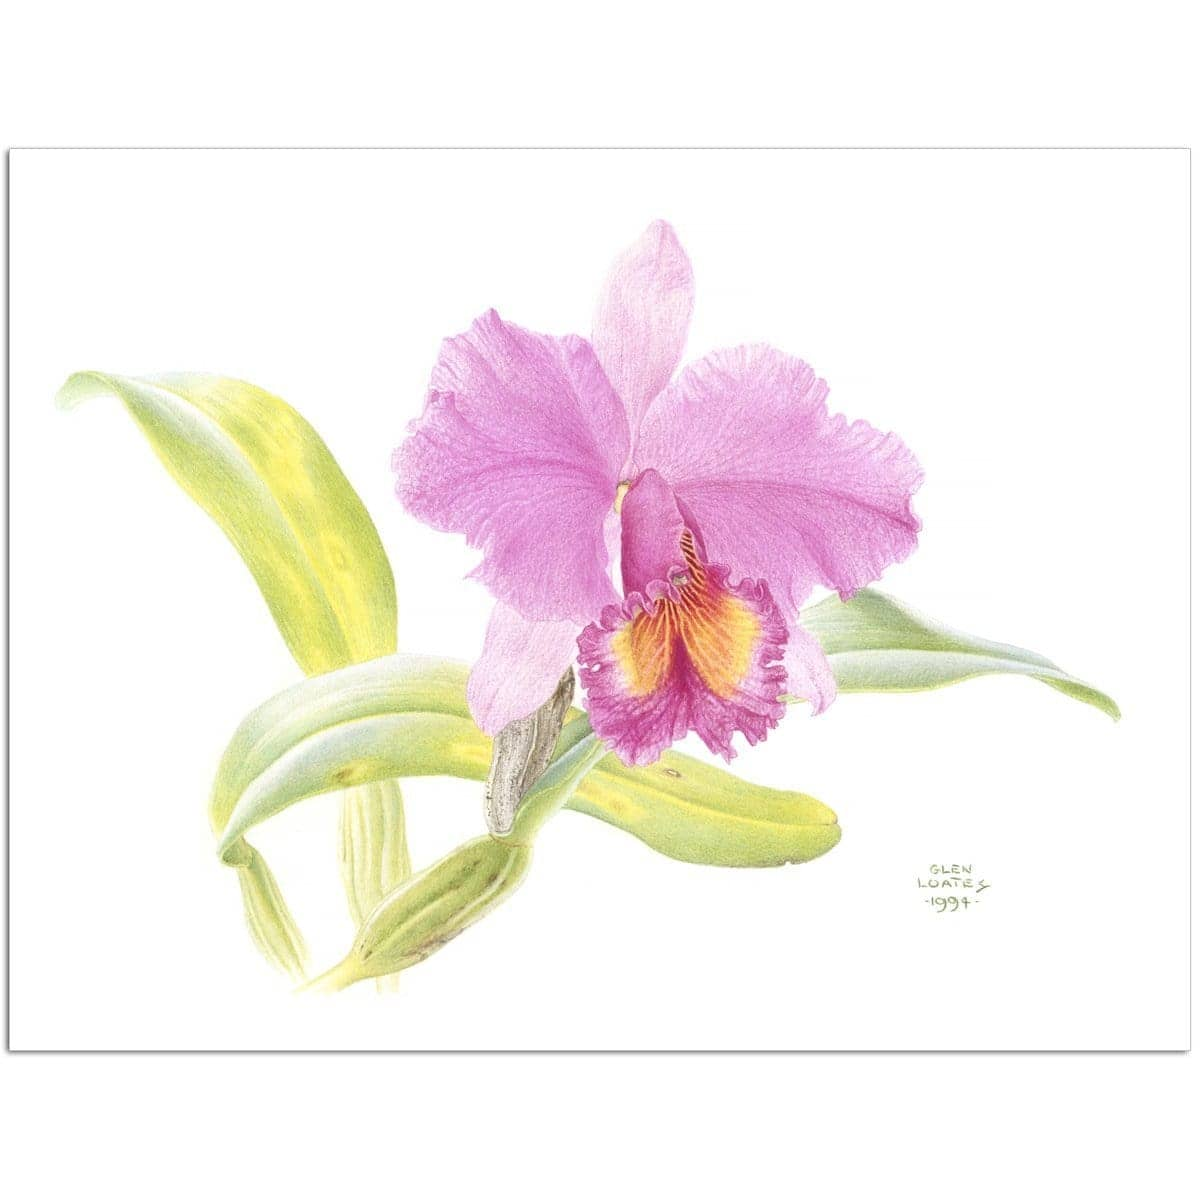 Crimson Cattleya Orchid - Art Print by Glen Loates from the Glen Loates Store